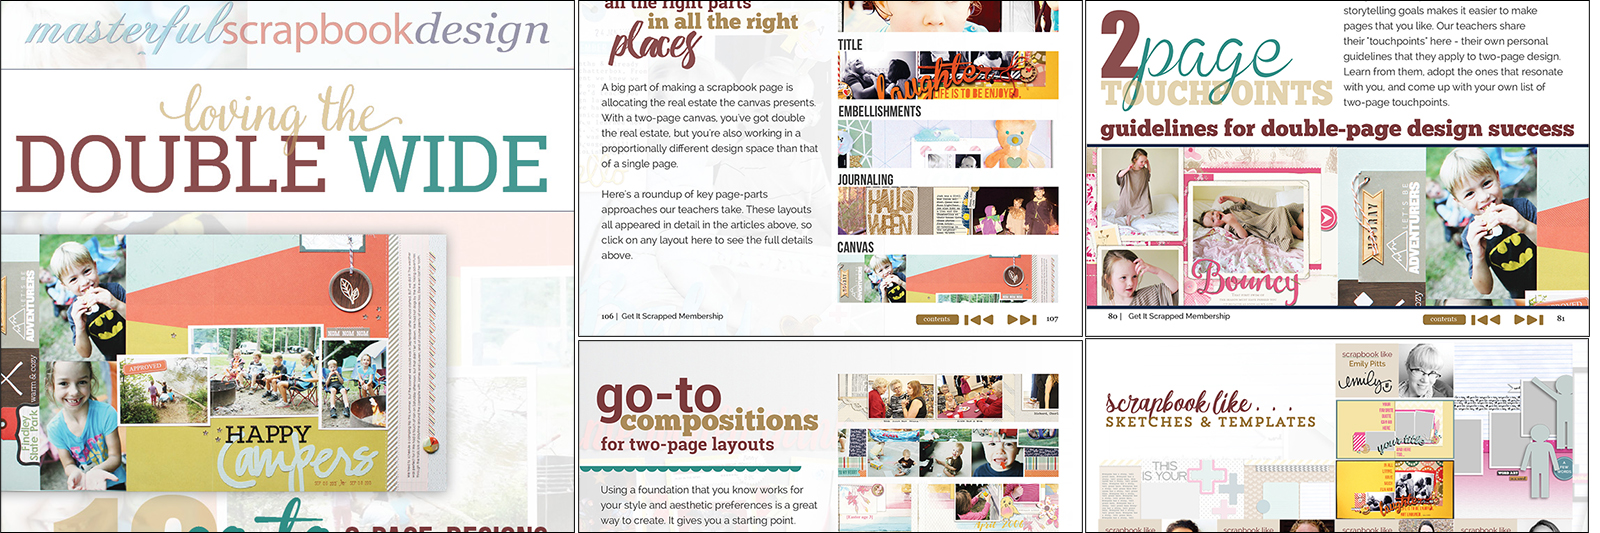 Loving the Double Wide | Ideas & Lessons for Scrapbooking Two-Page Layouts